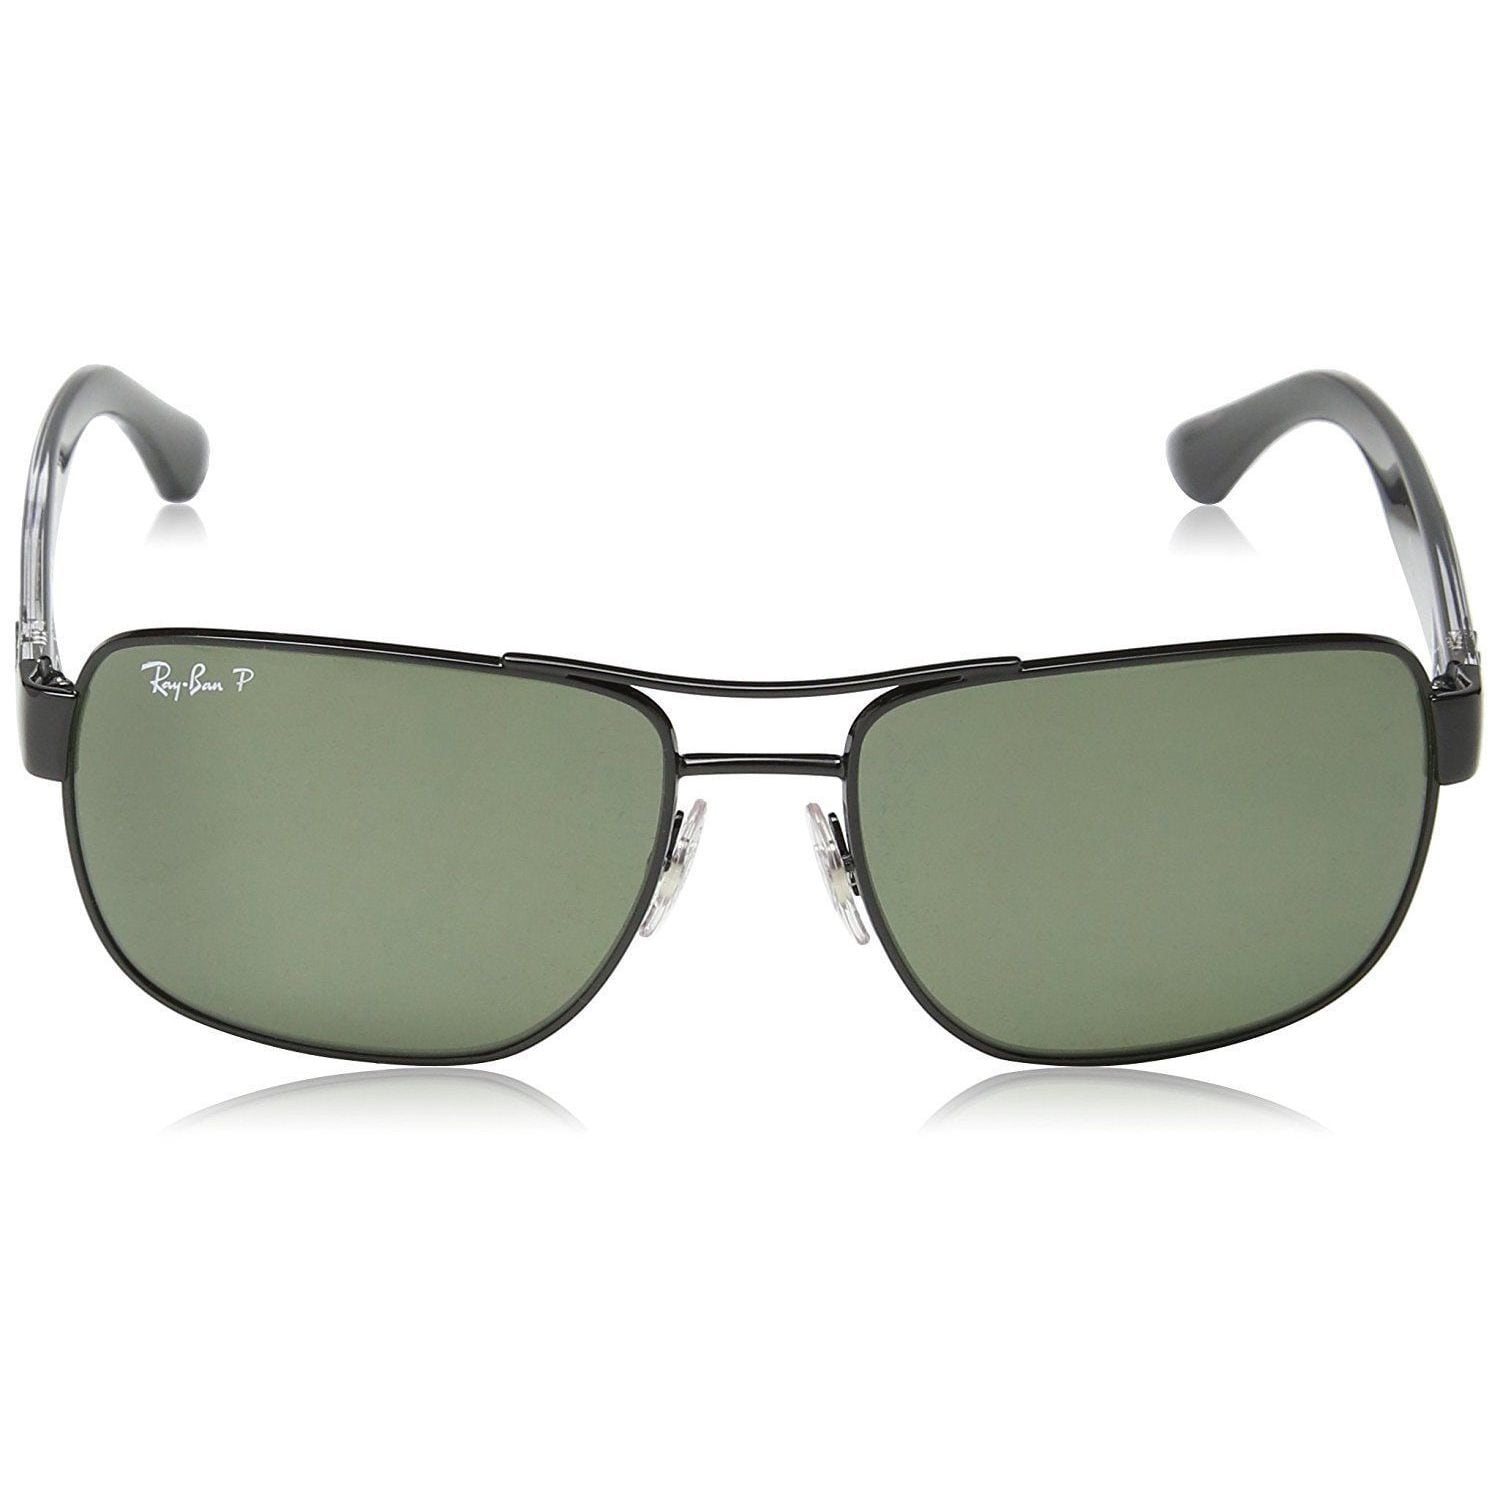 13f54ebabc Shop Ray-Ban RB3530 002 9A Men s Black Frame Polarized Green Lens  Sunglasses - Free Shipping Today - Overstock - 15079449